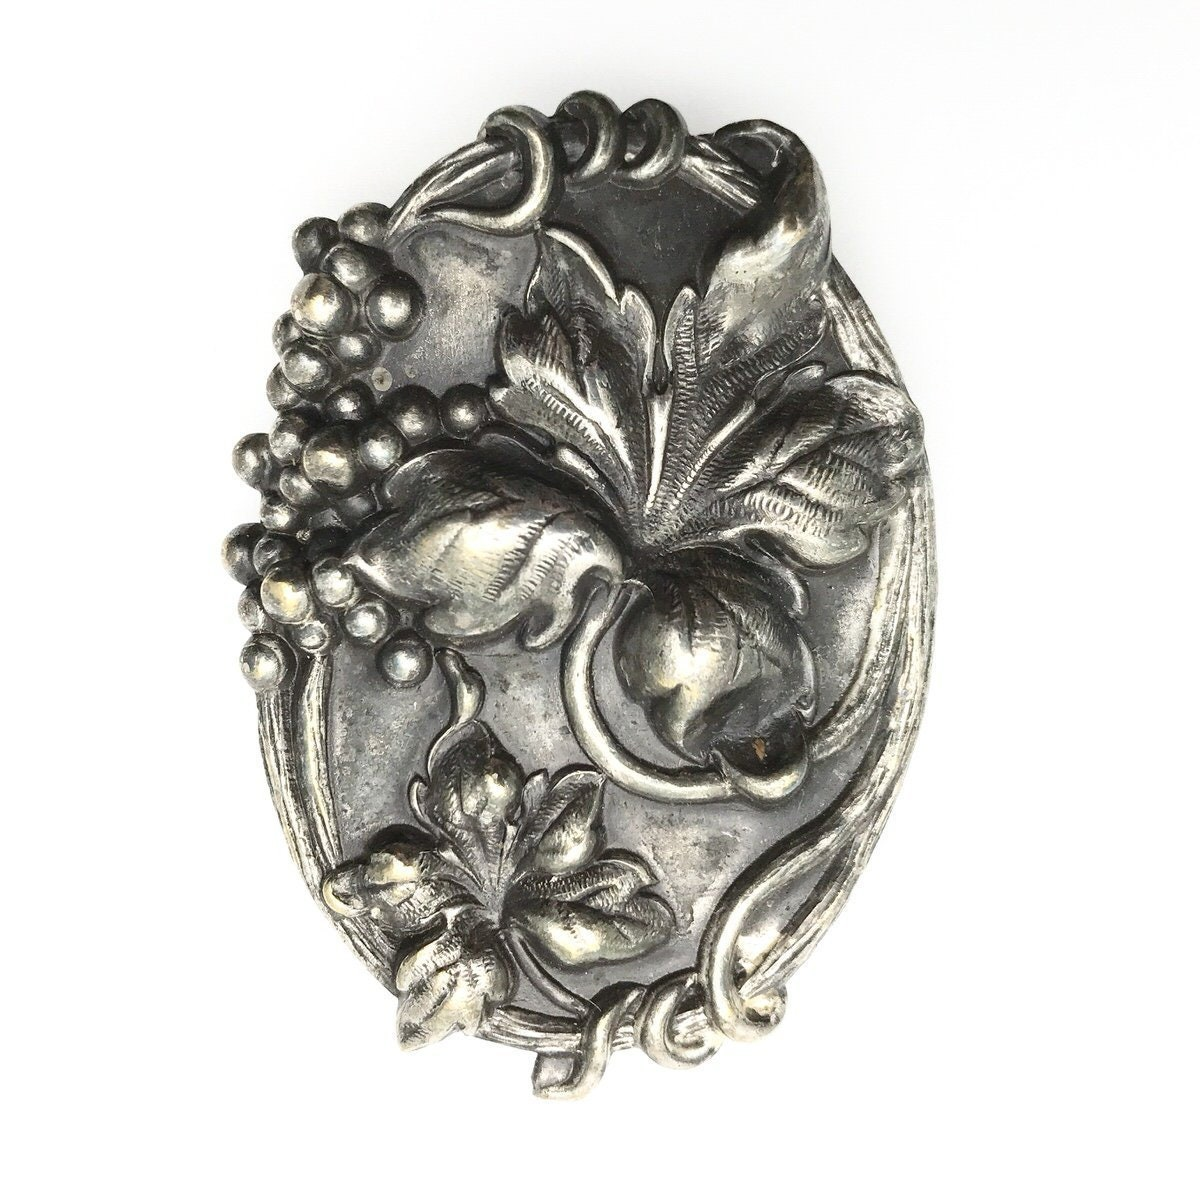 Other Fine Jewelry 1895-1935 Antique English Art Nouveau 1907 Sterling Silver Enamel Sash Buckle Periods & Styles